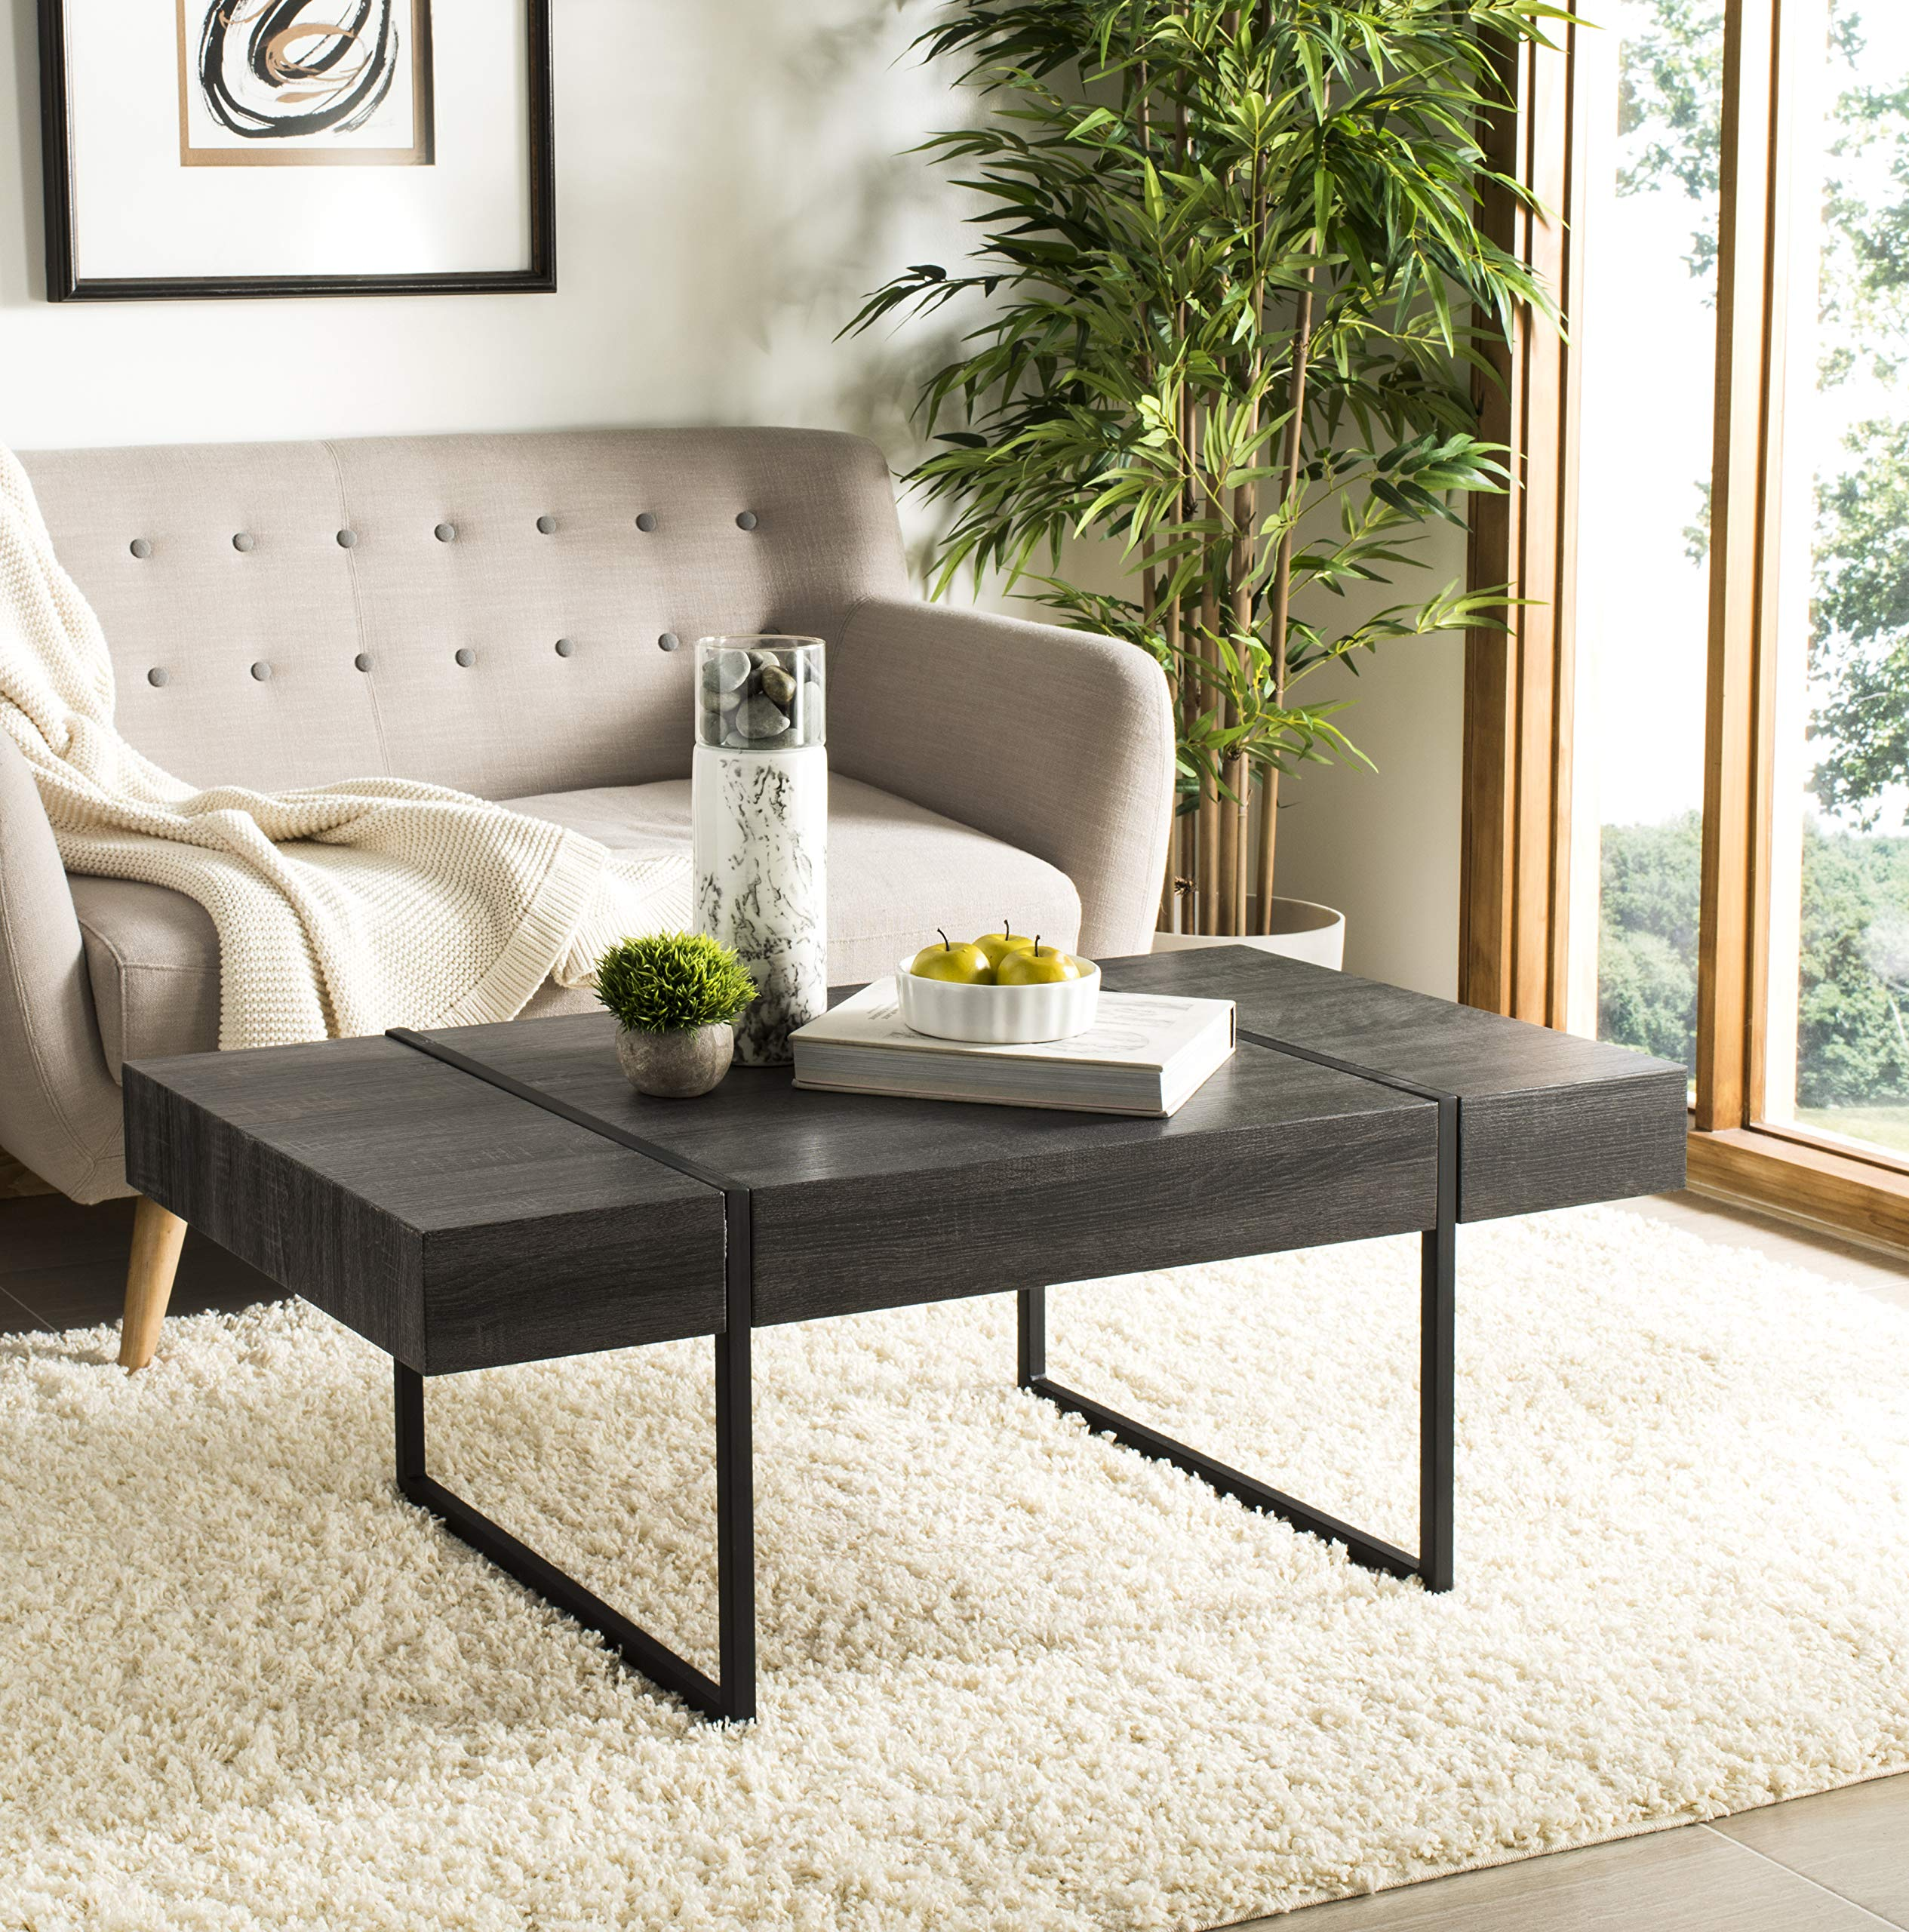 Safavieh Home Collection Tristan Black Rectangular Modern Coffee Table by Safavieh